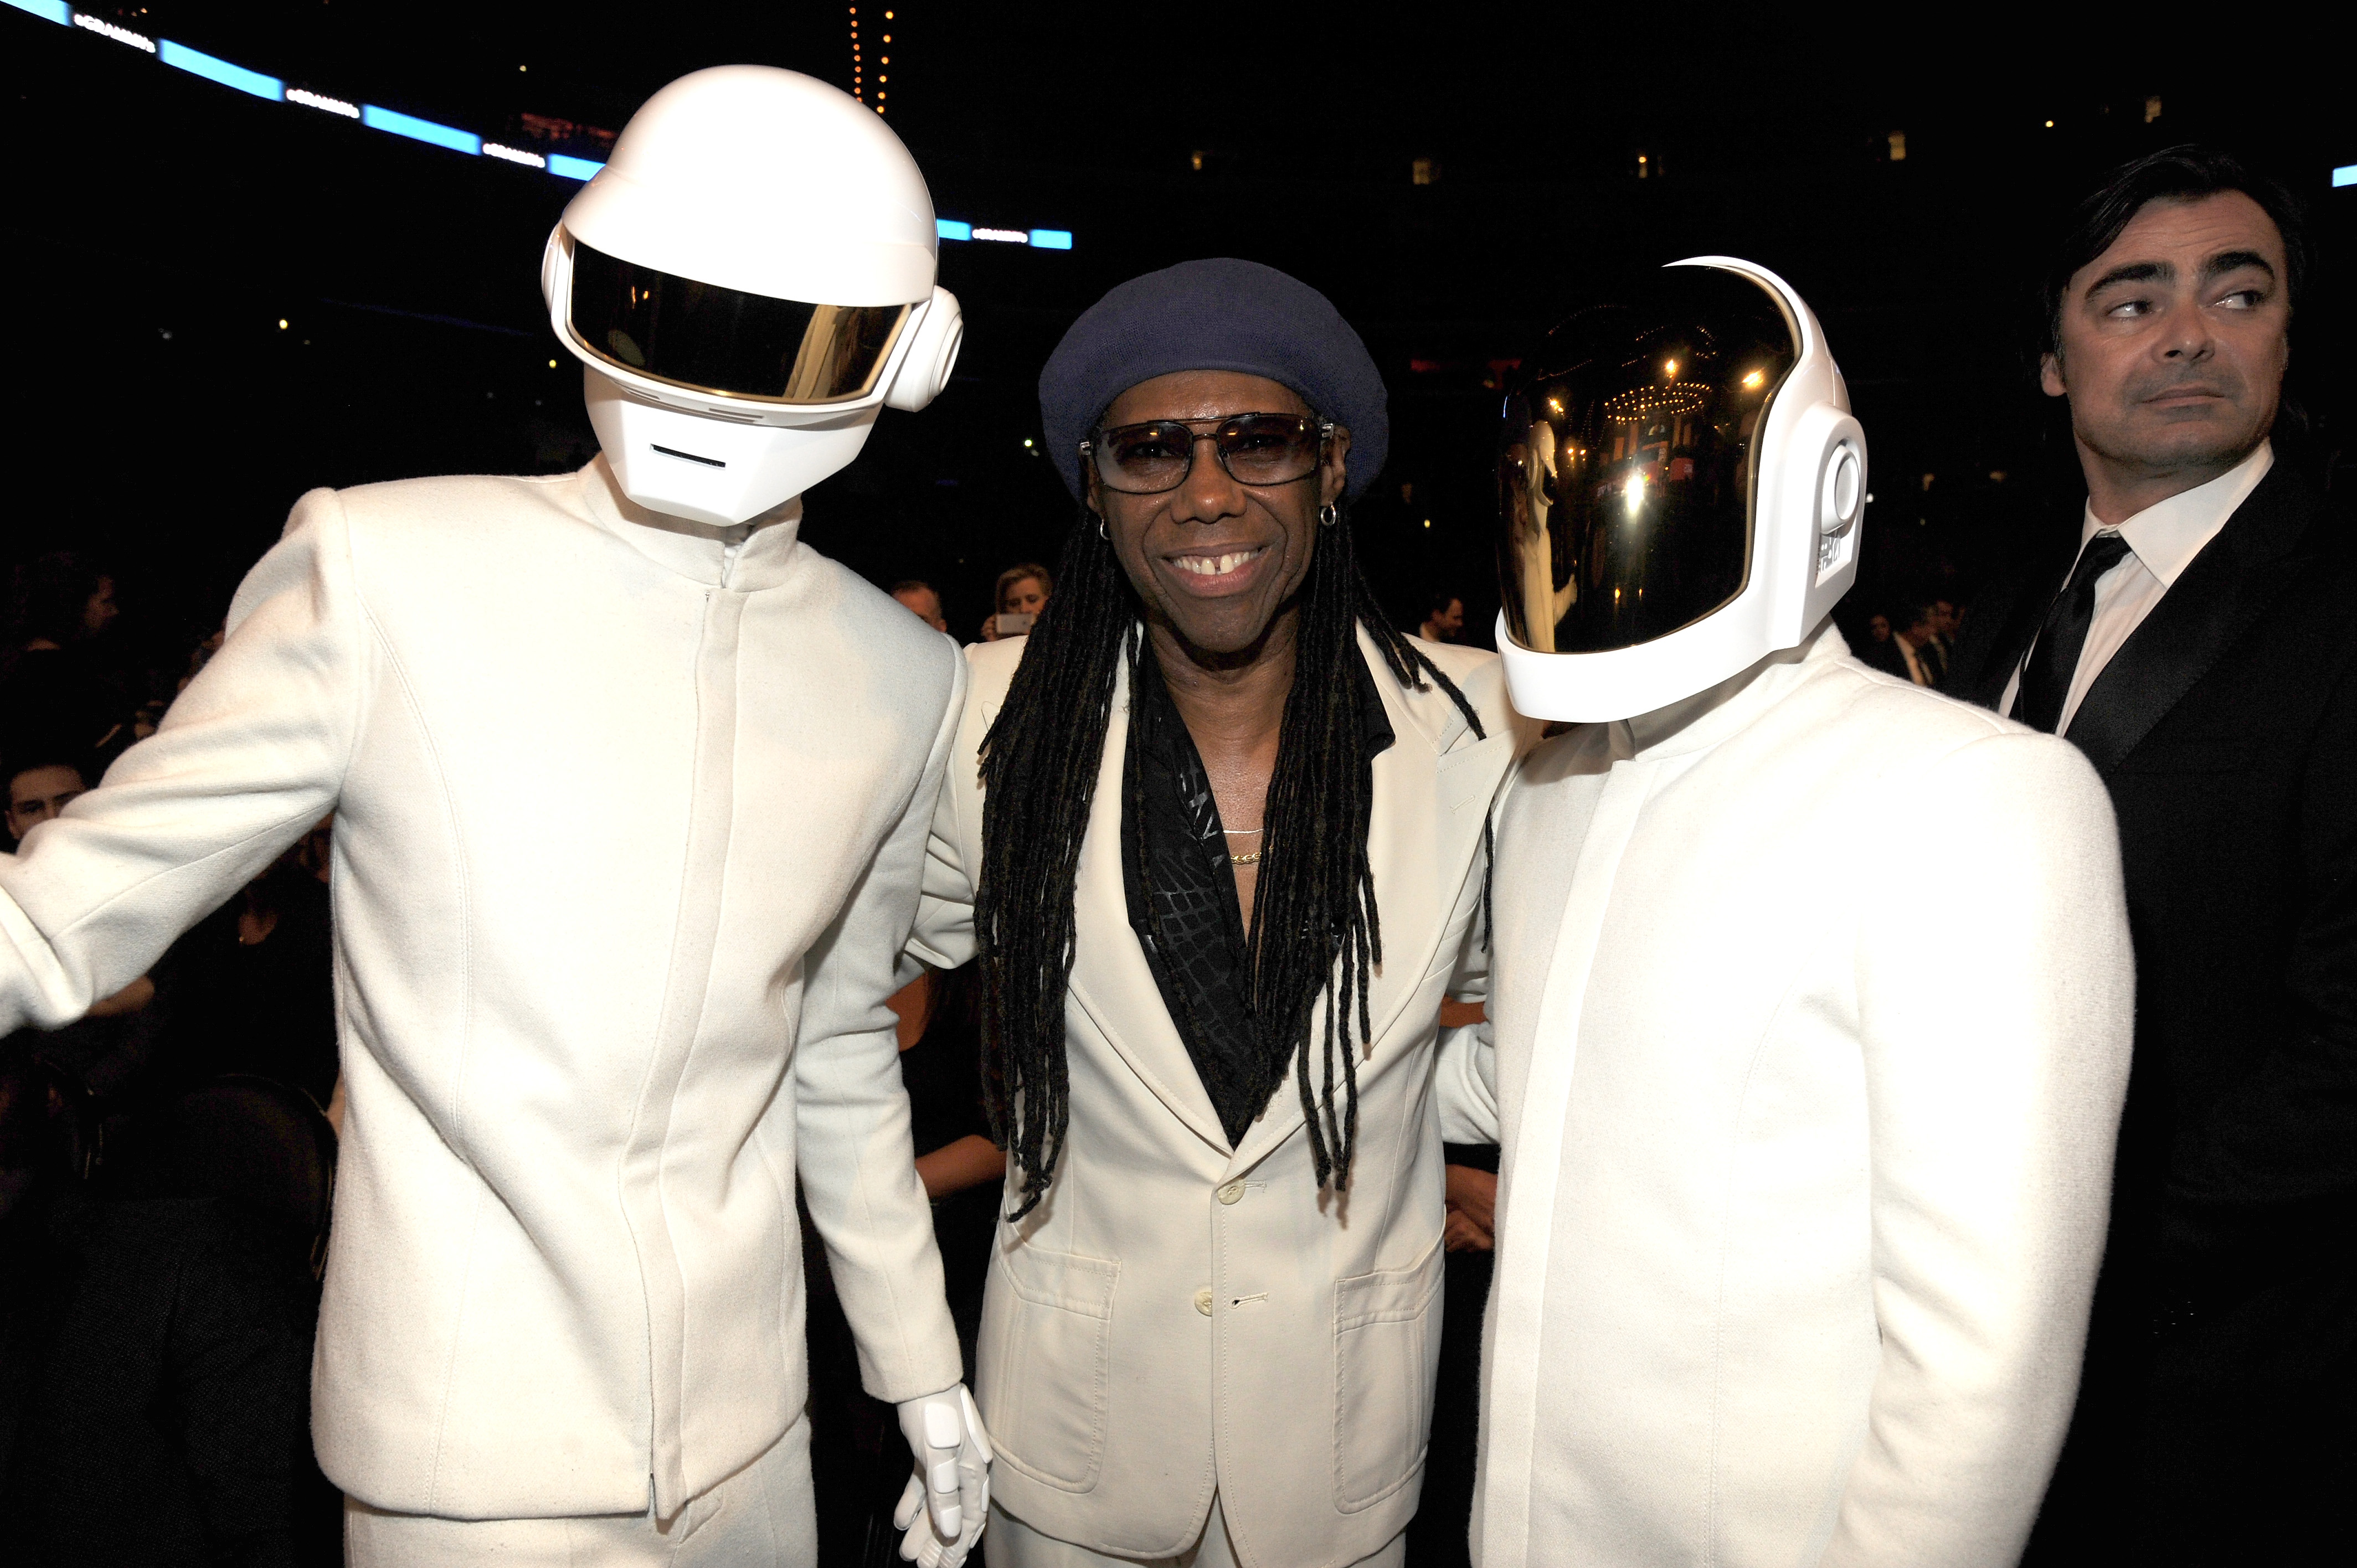 LOS ANGELES, CA - JANUARY 26:  (L-R) Daft Punk's Thomas Bangalter, musician Nile Rodgers and Daft Punk's Guy-Manuel de Homem-